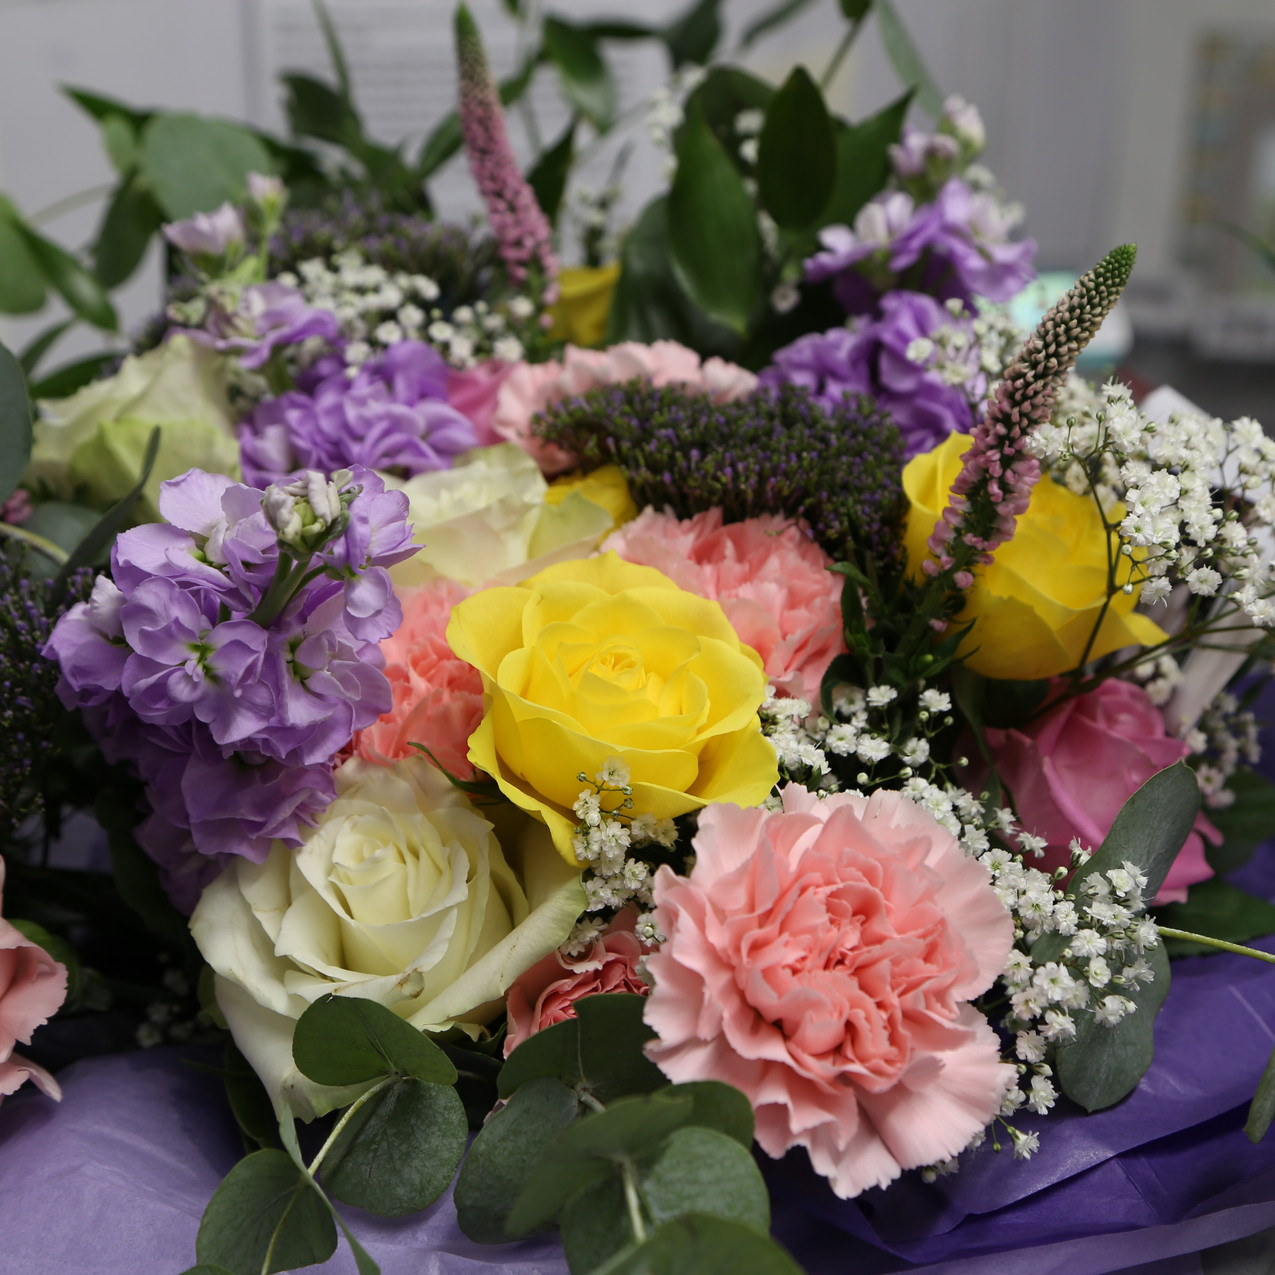 Order flowers from Inspirations